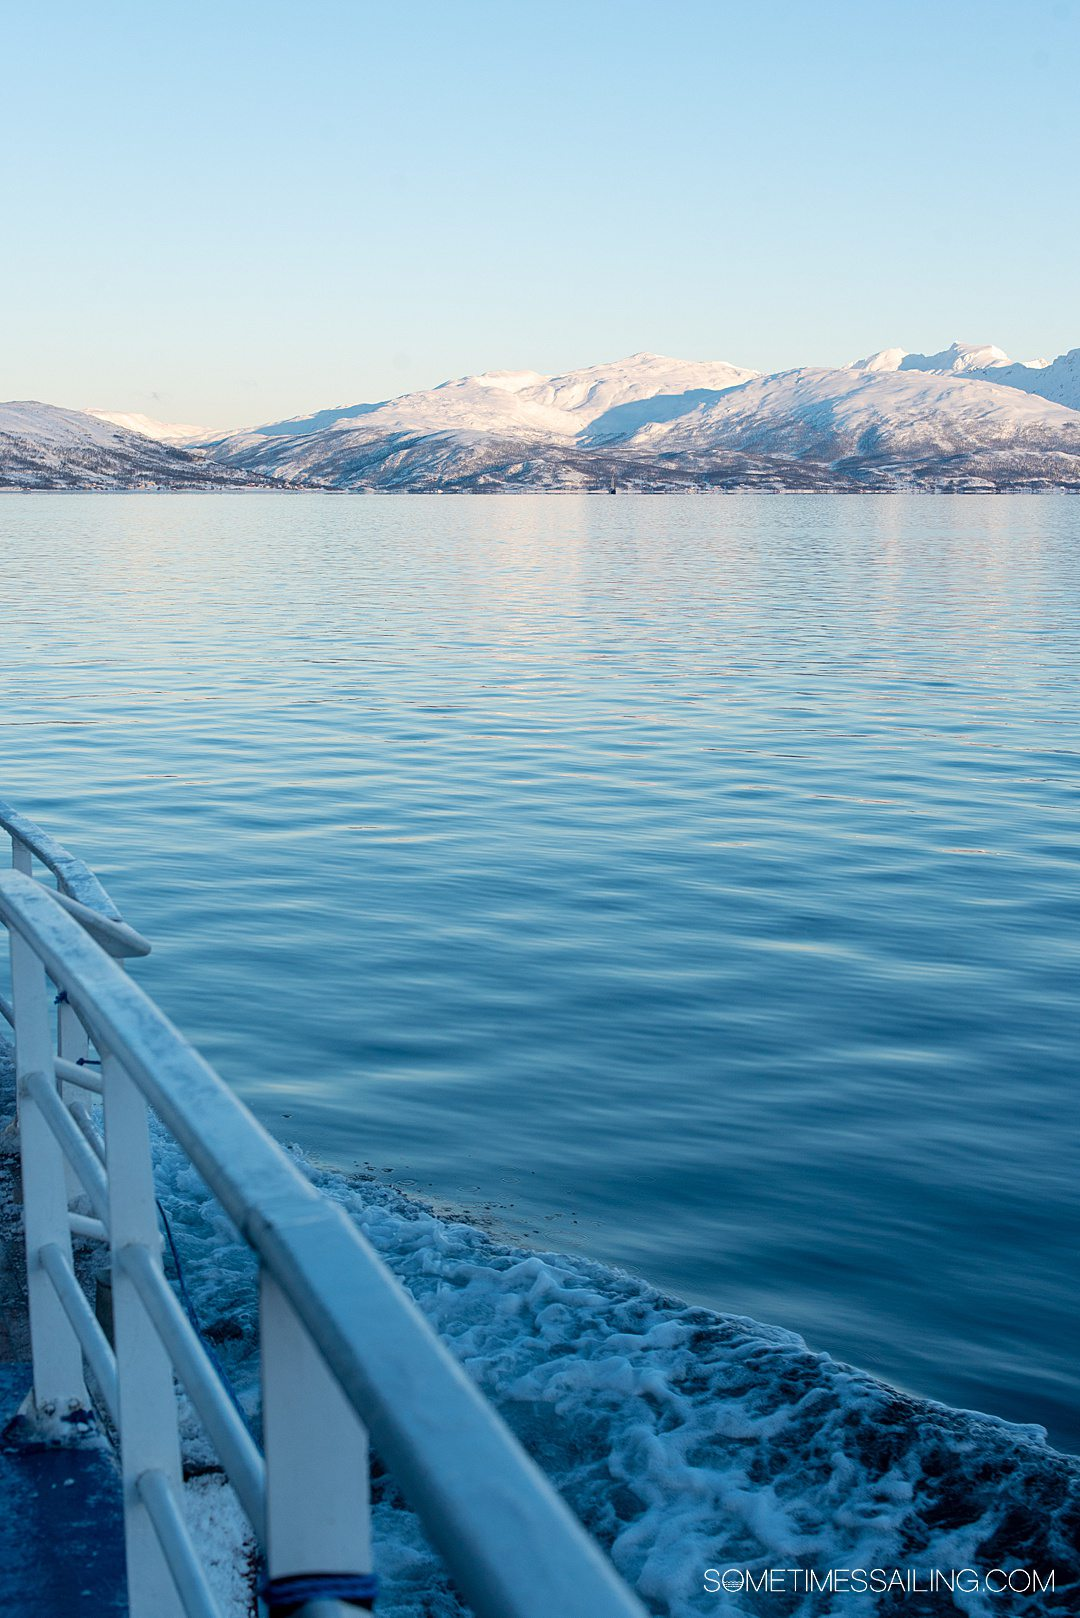 Snowy mountains in the distance and blue water in the polar region of Tromso, Norway.